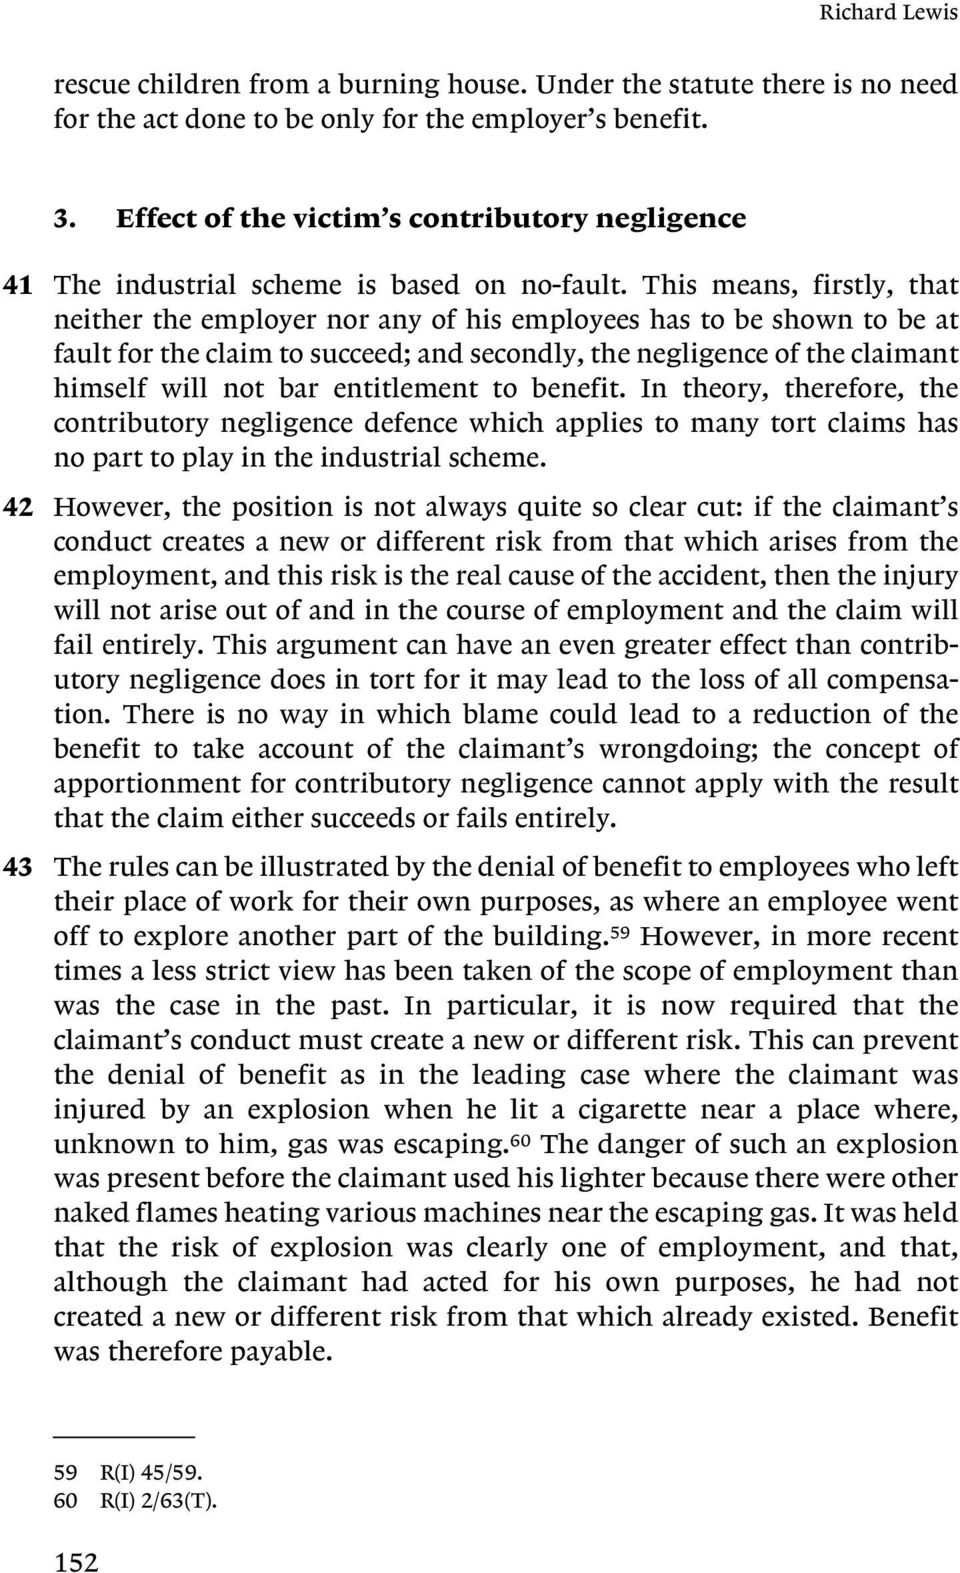 This means, firstly, that neither the employer nor any of his employees has to be shown to be at fault for the claim to succeed; and secondly, the negligence of the claimant himself will not bar